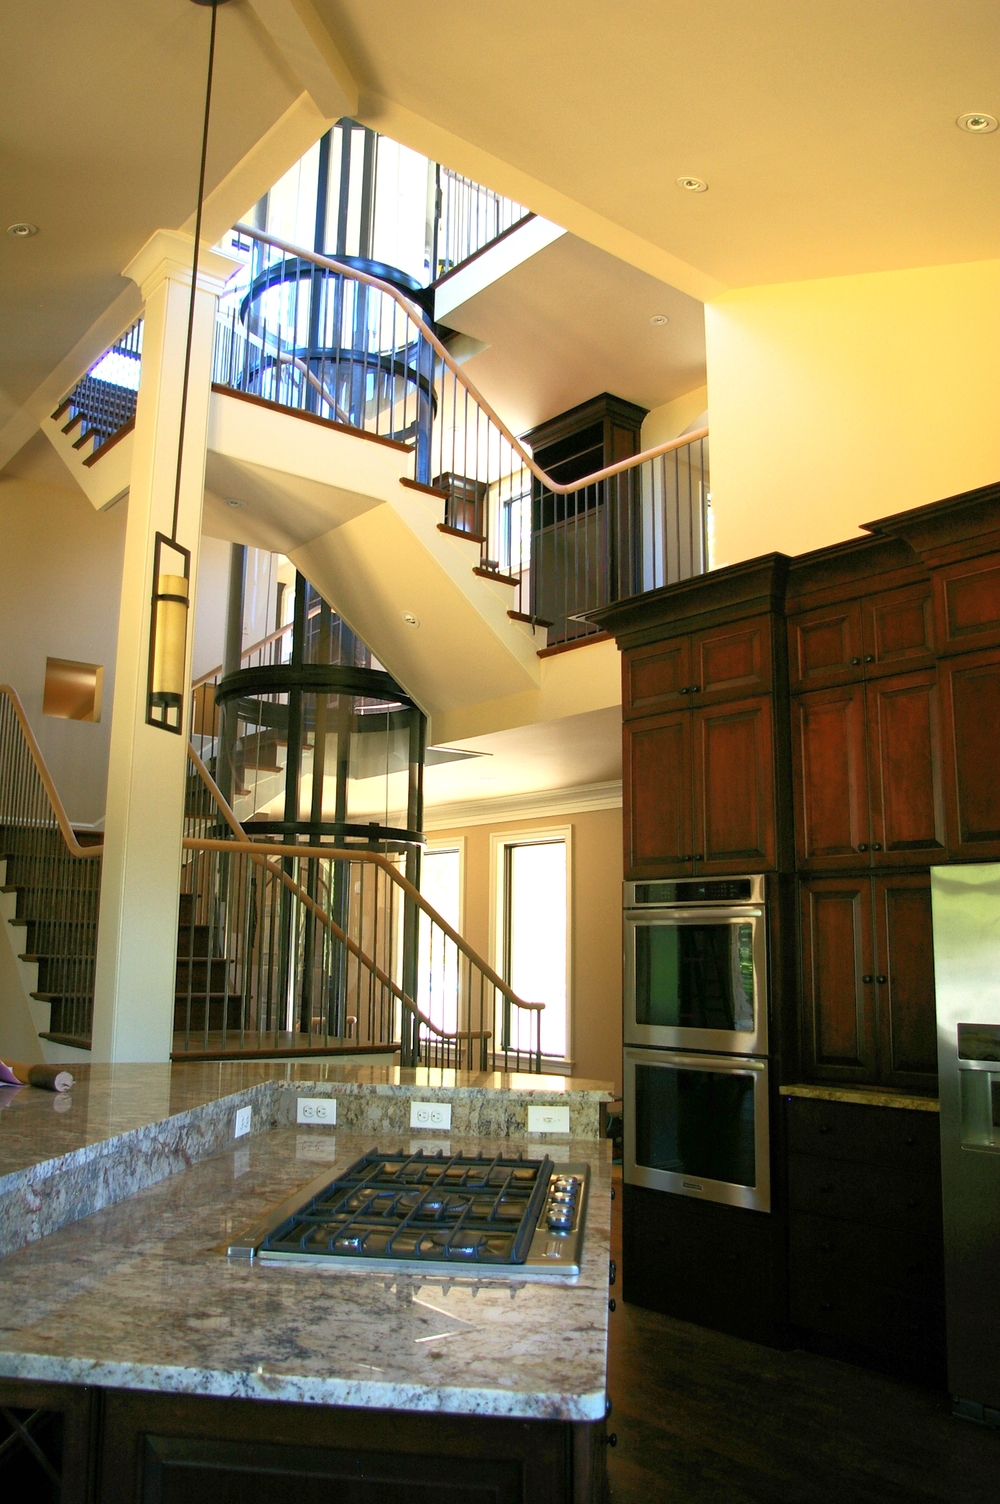 Glass elevator as seen from kitchen